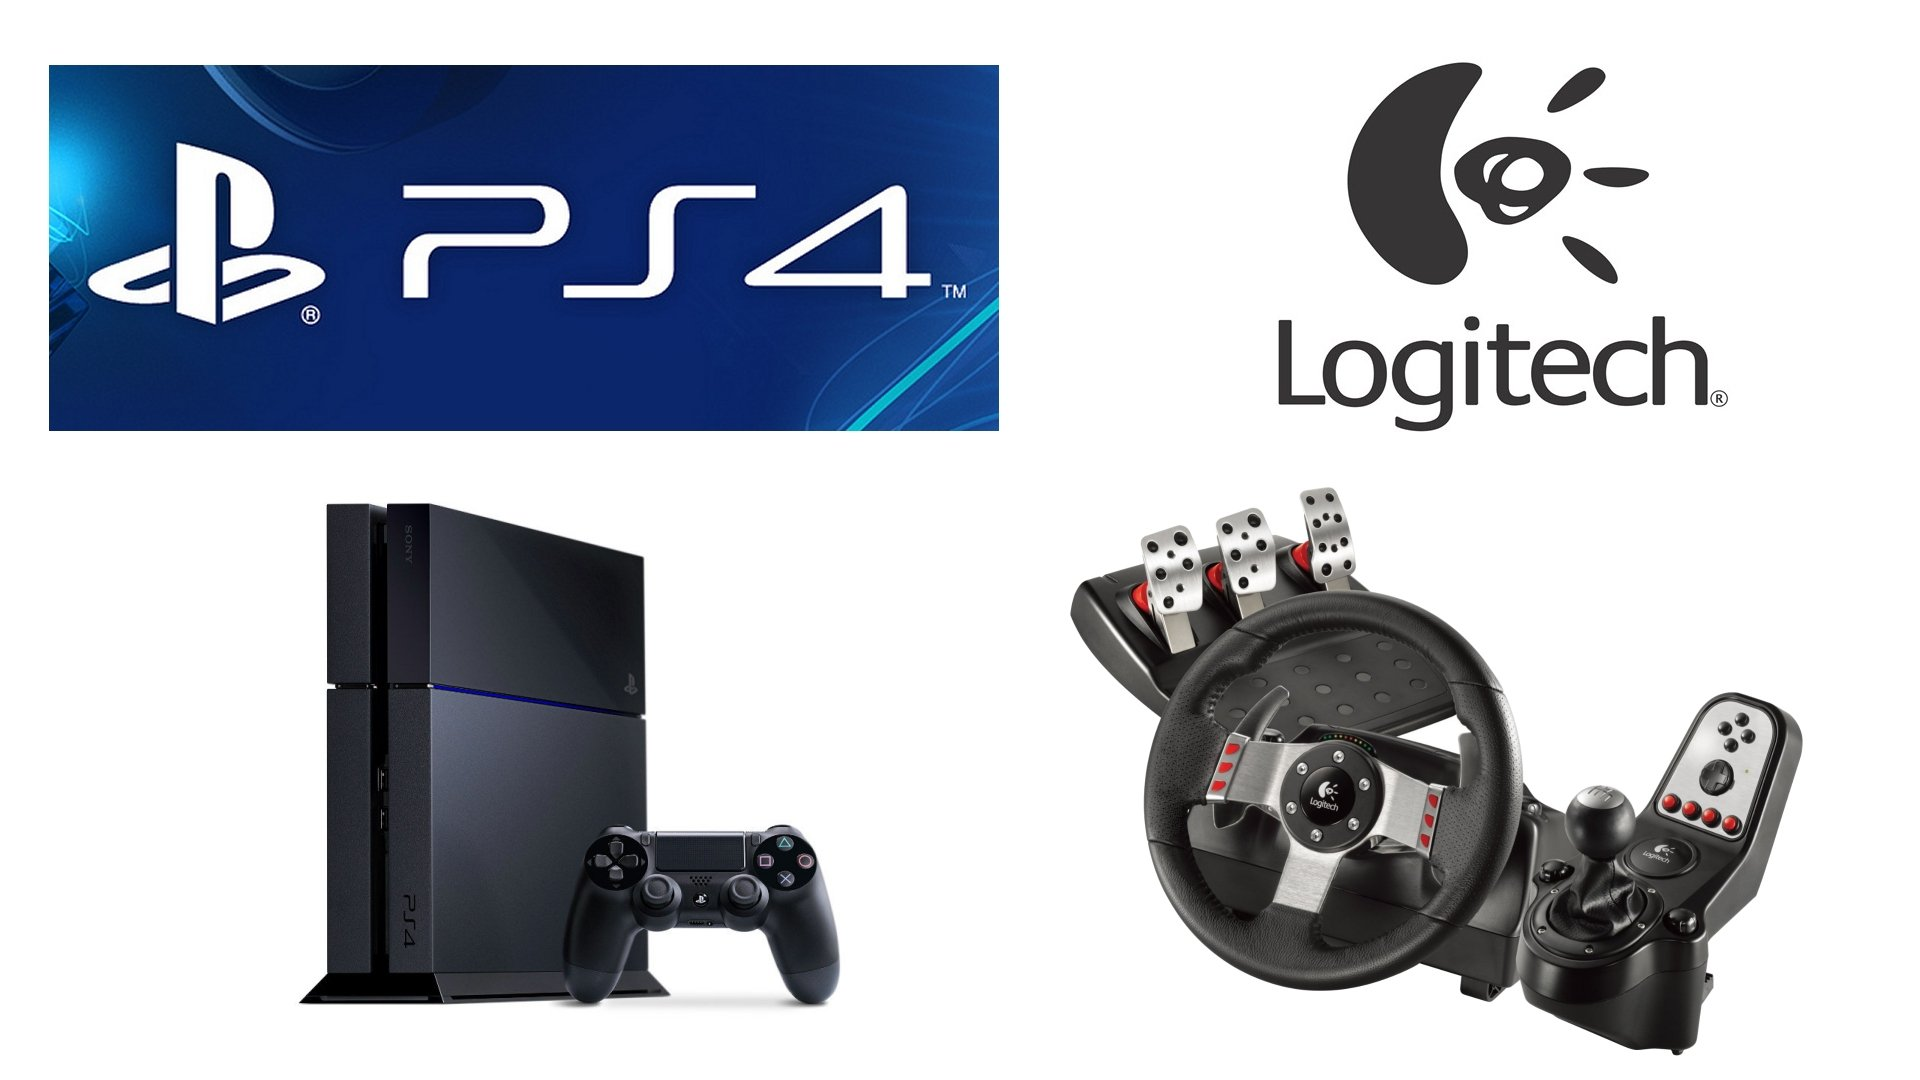 Logitech G27 Support on Playstation 4 – My Take